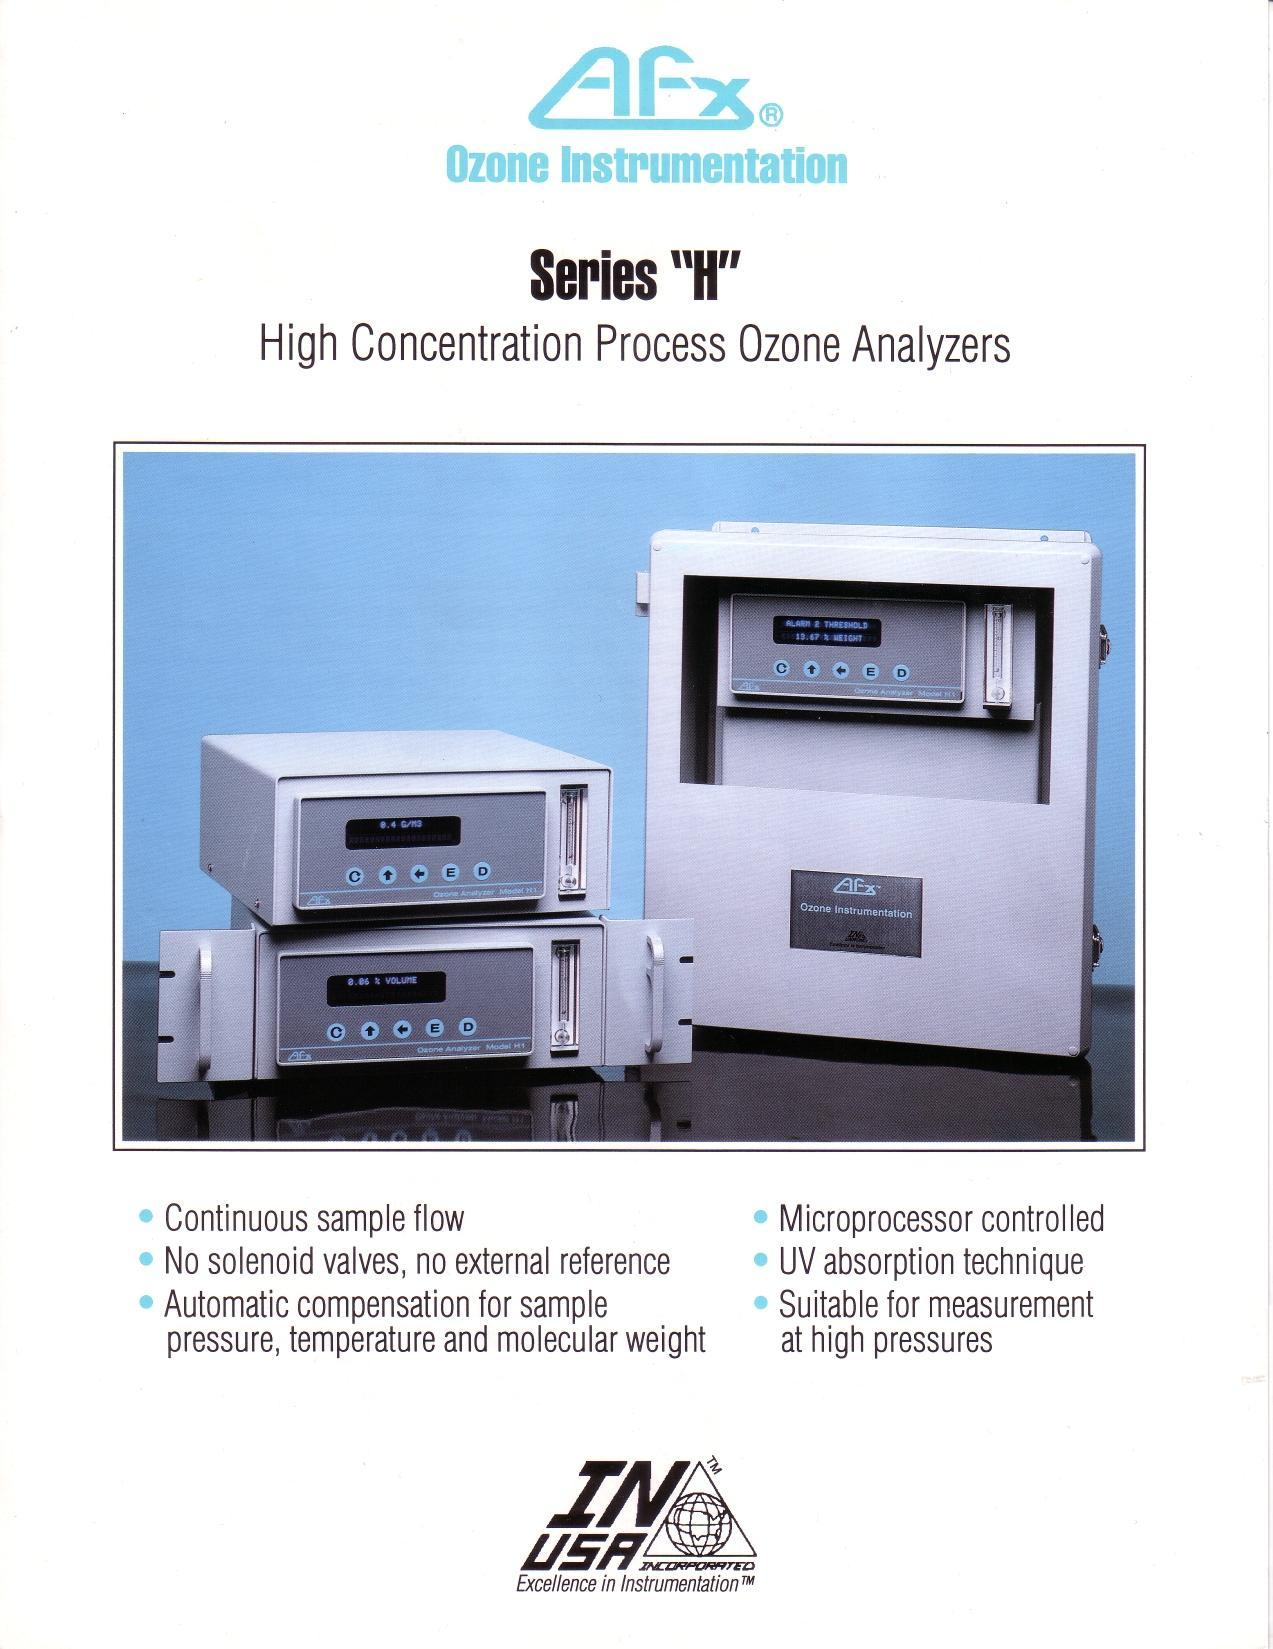 High Concentration Ozone Analyzers for IN USA